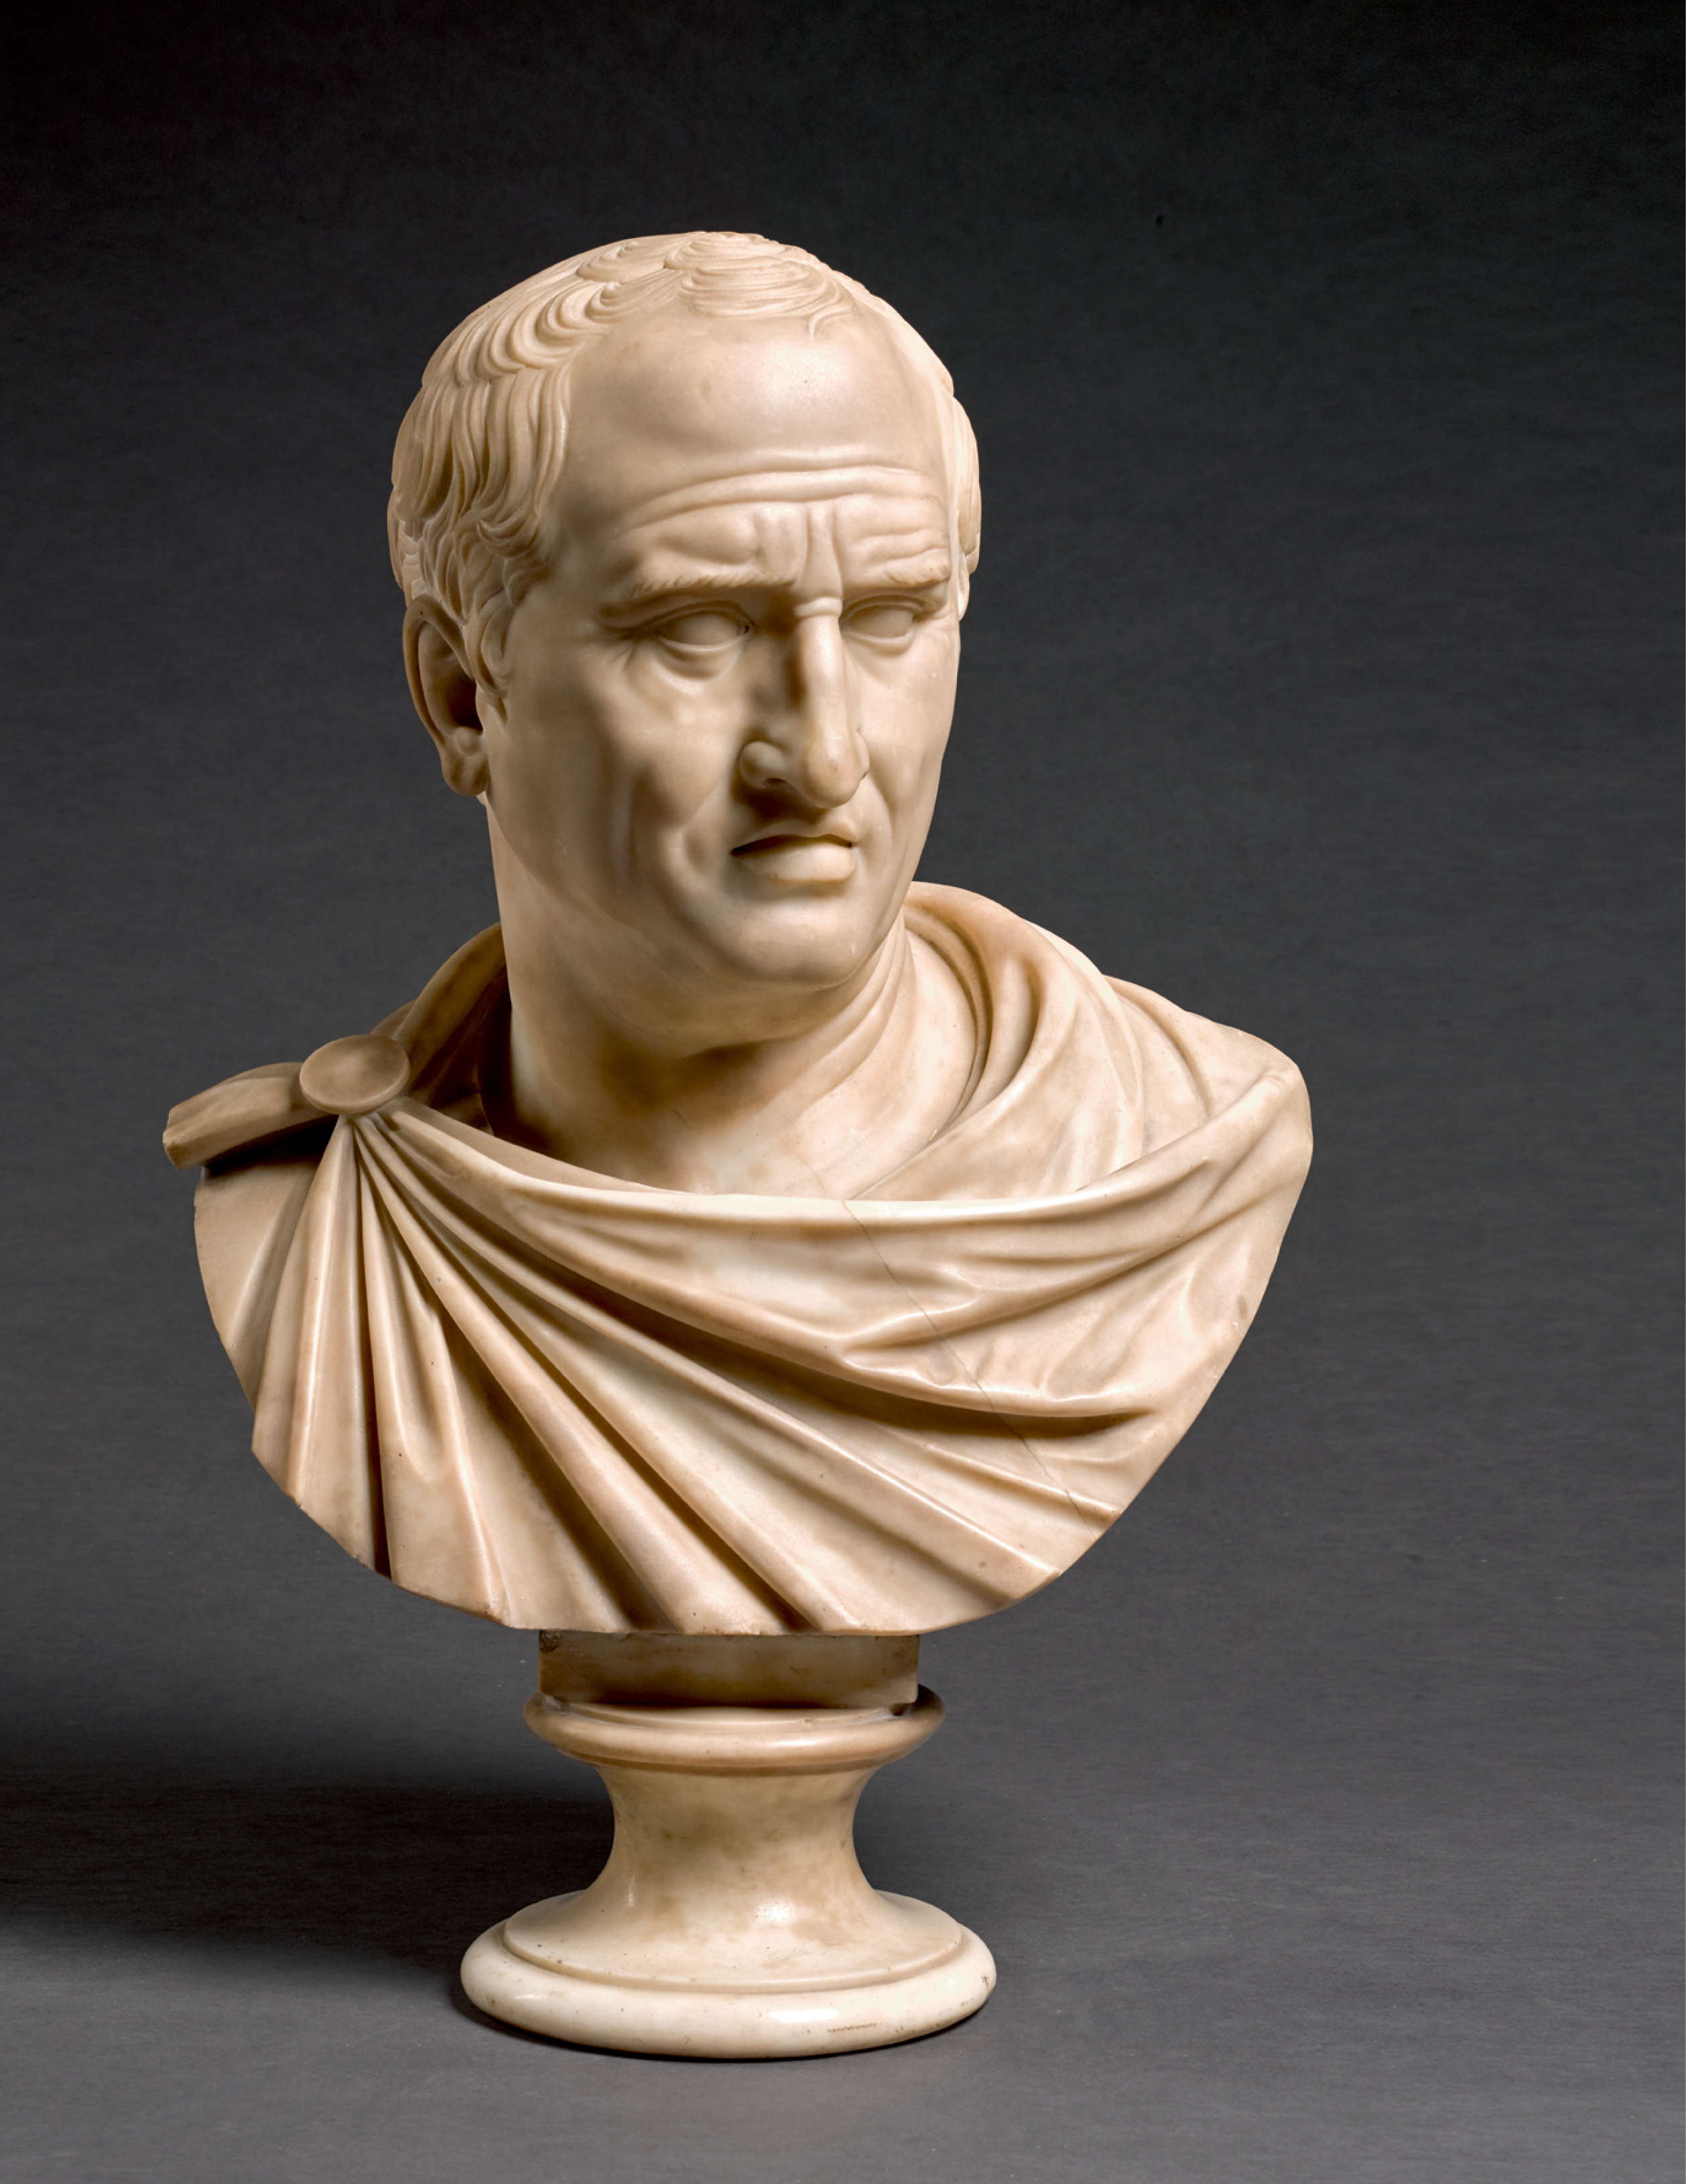 View full screen - View 1 of Lot 105. ITALIAN, CIRCA 1800, AFTER THE ANTIQUE   BUST OF MARCUS TULLIUS CICERO (106-43 BCE).